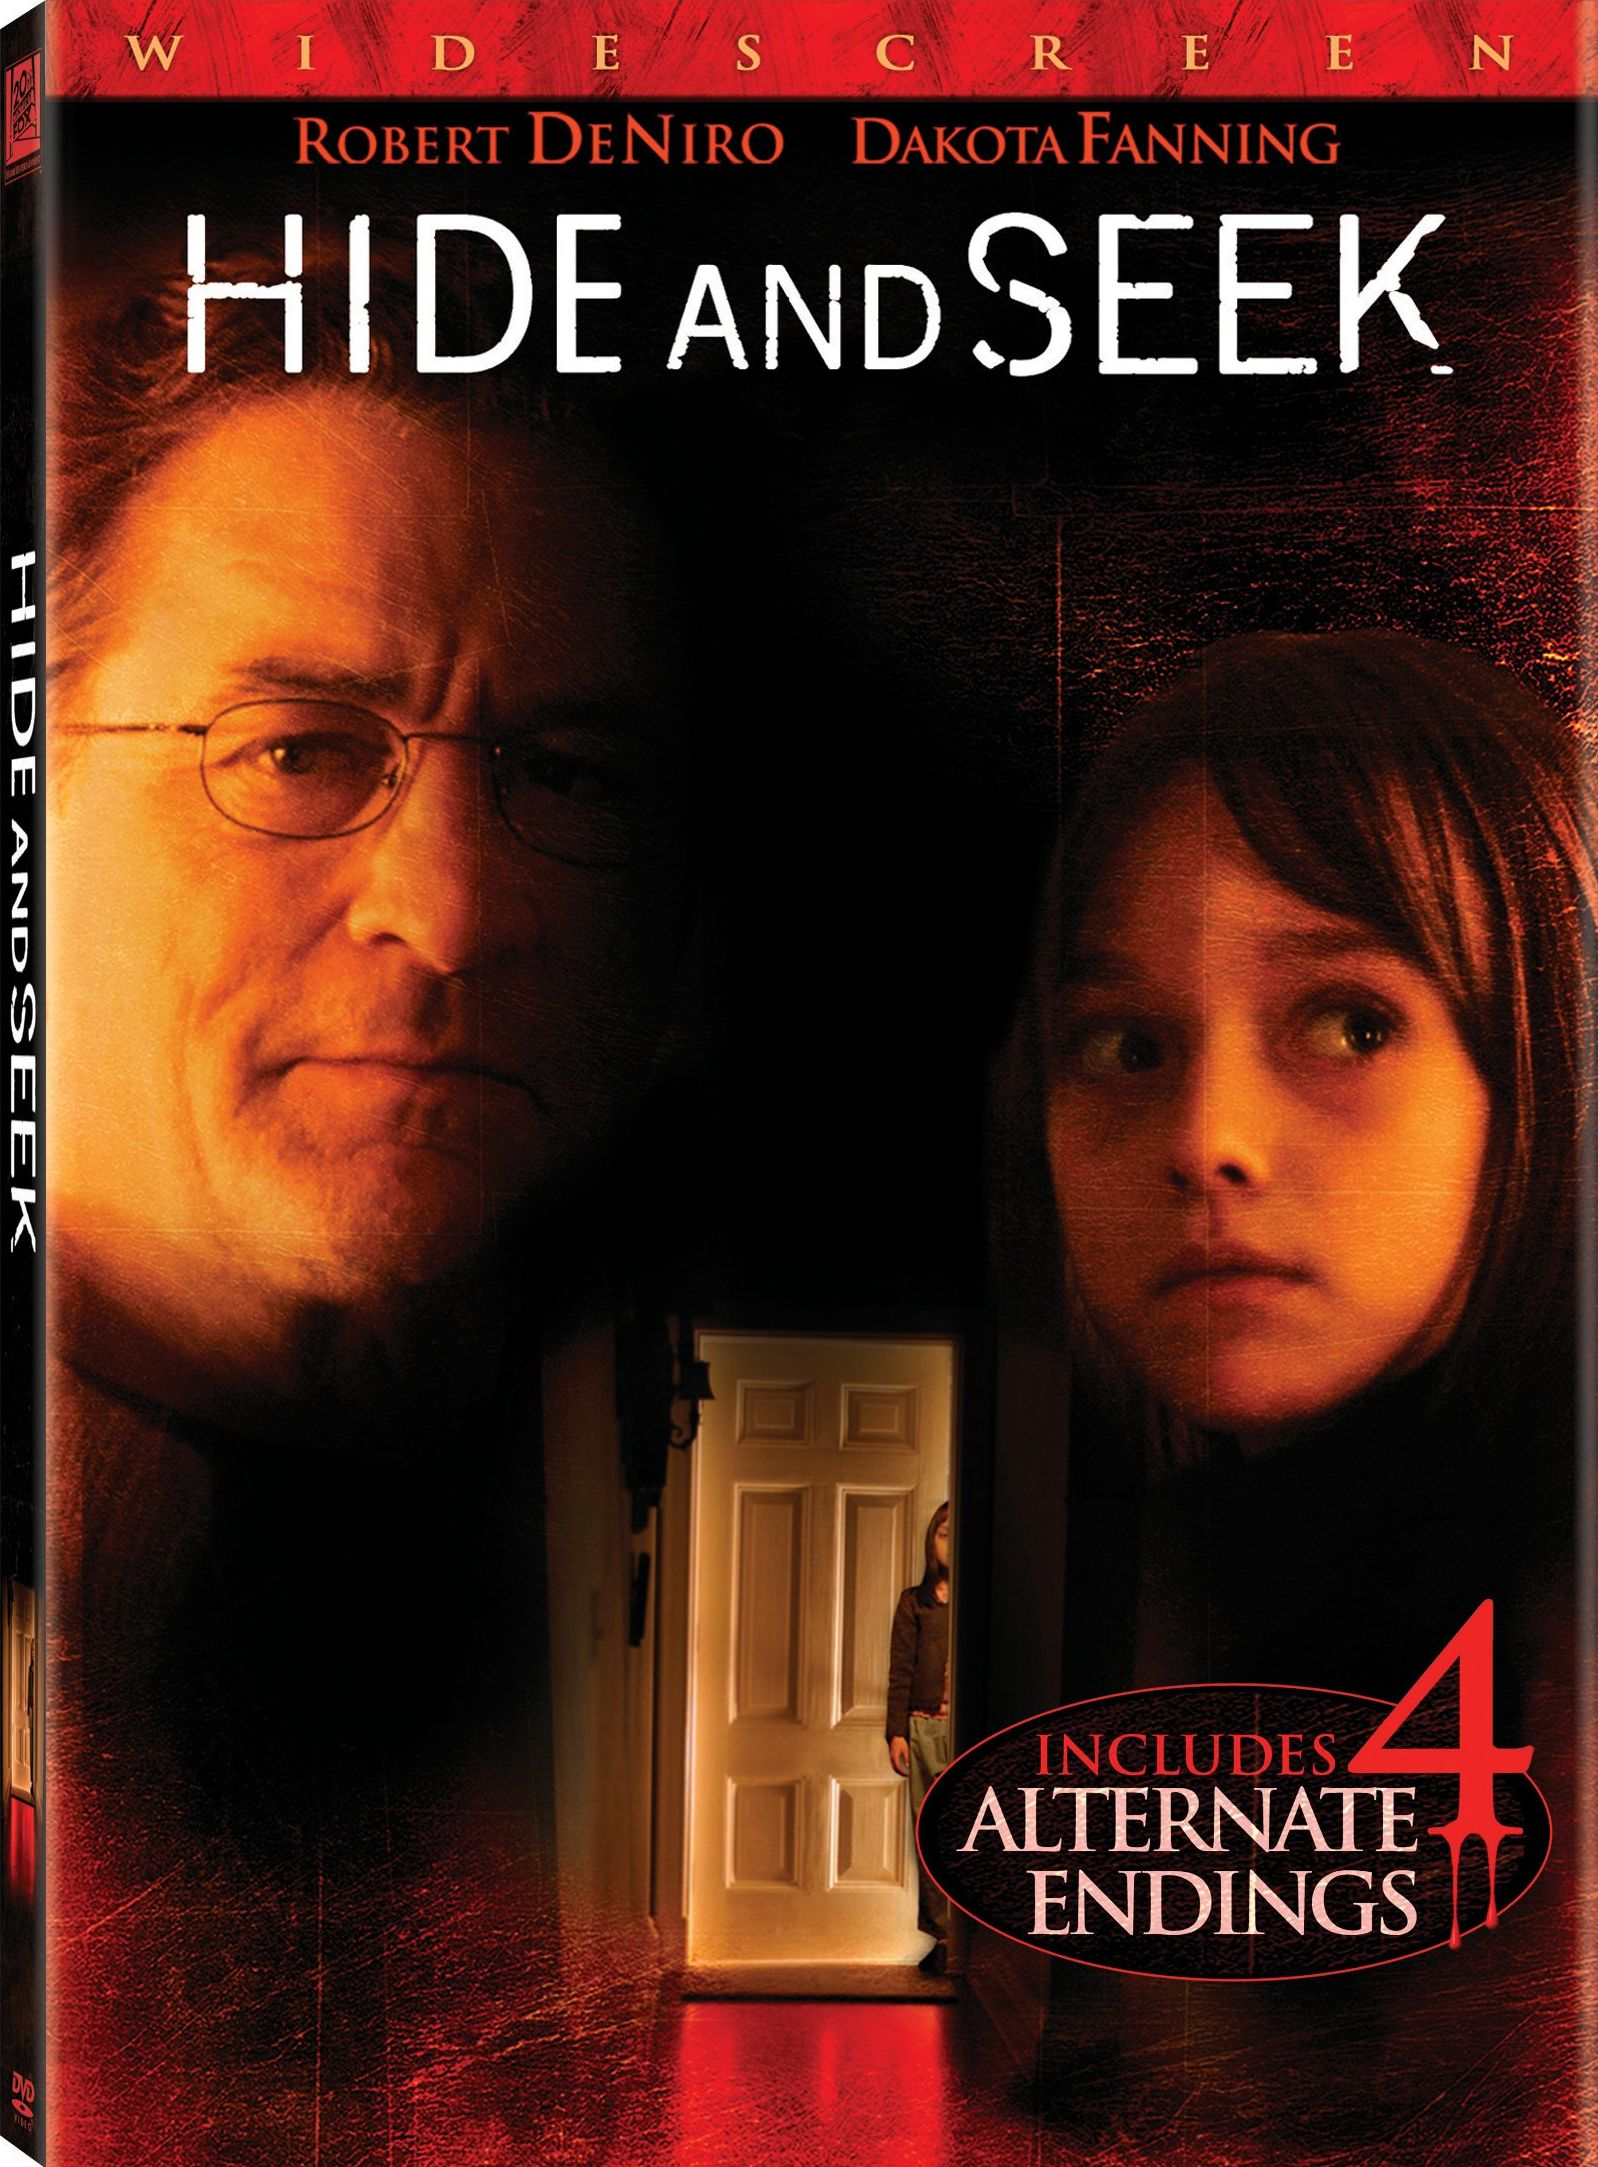 hide and seek 2005 dvd planet store. Black Bedroom Furniture Sets. Home Design Ideas